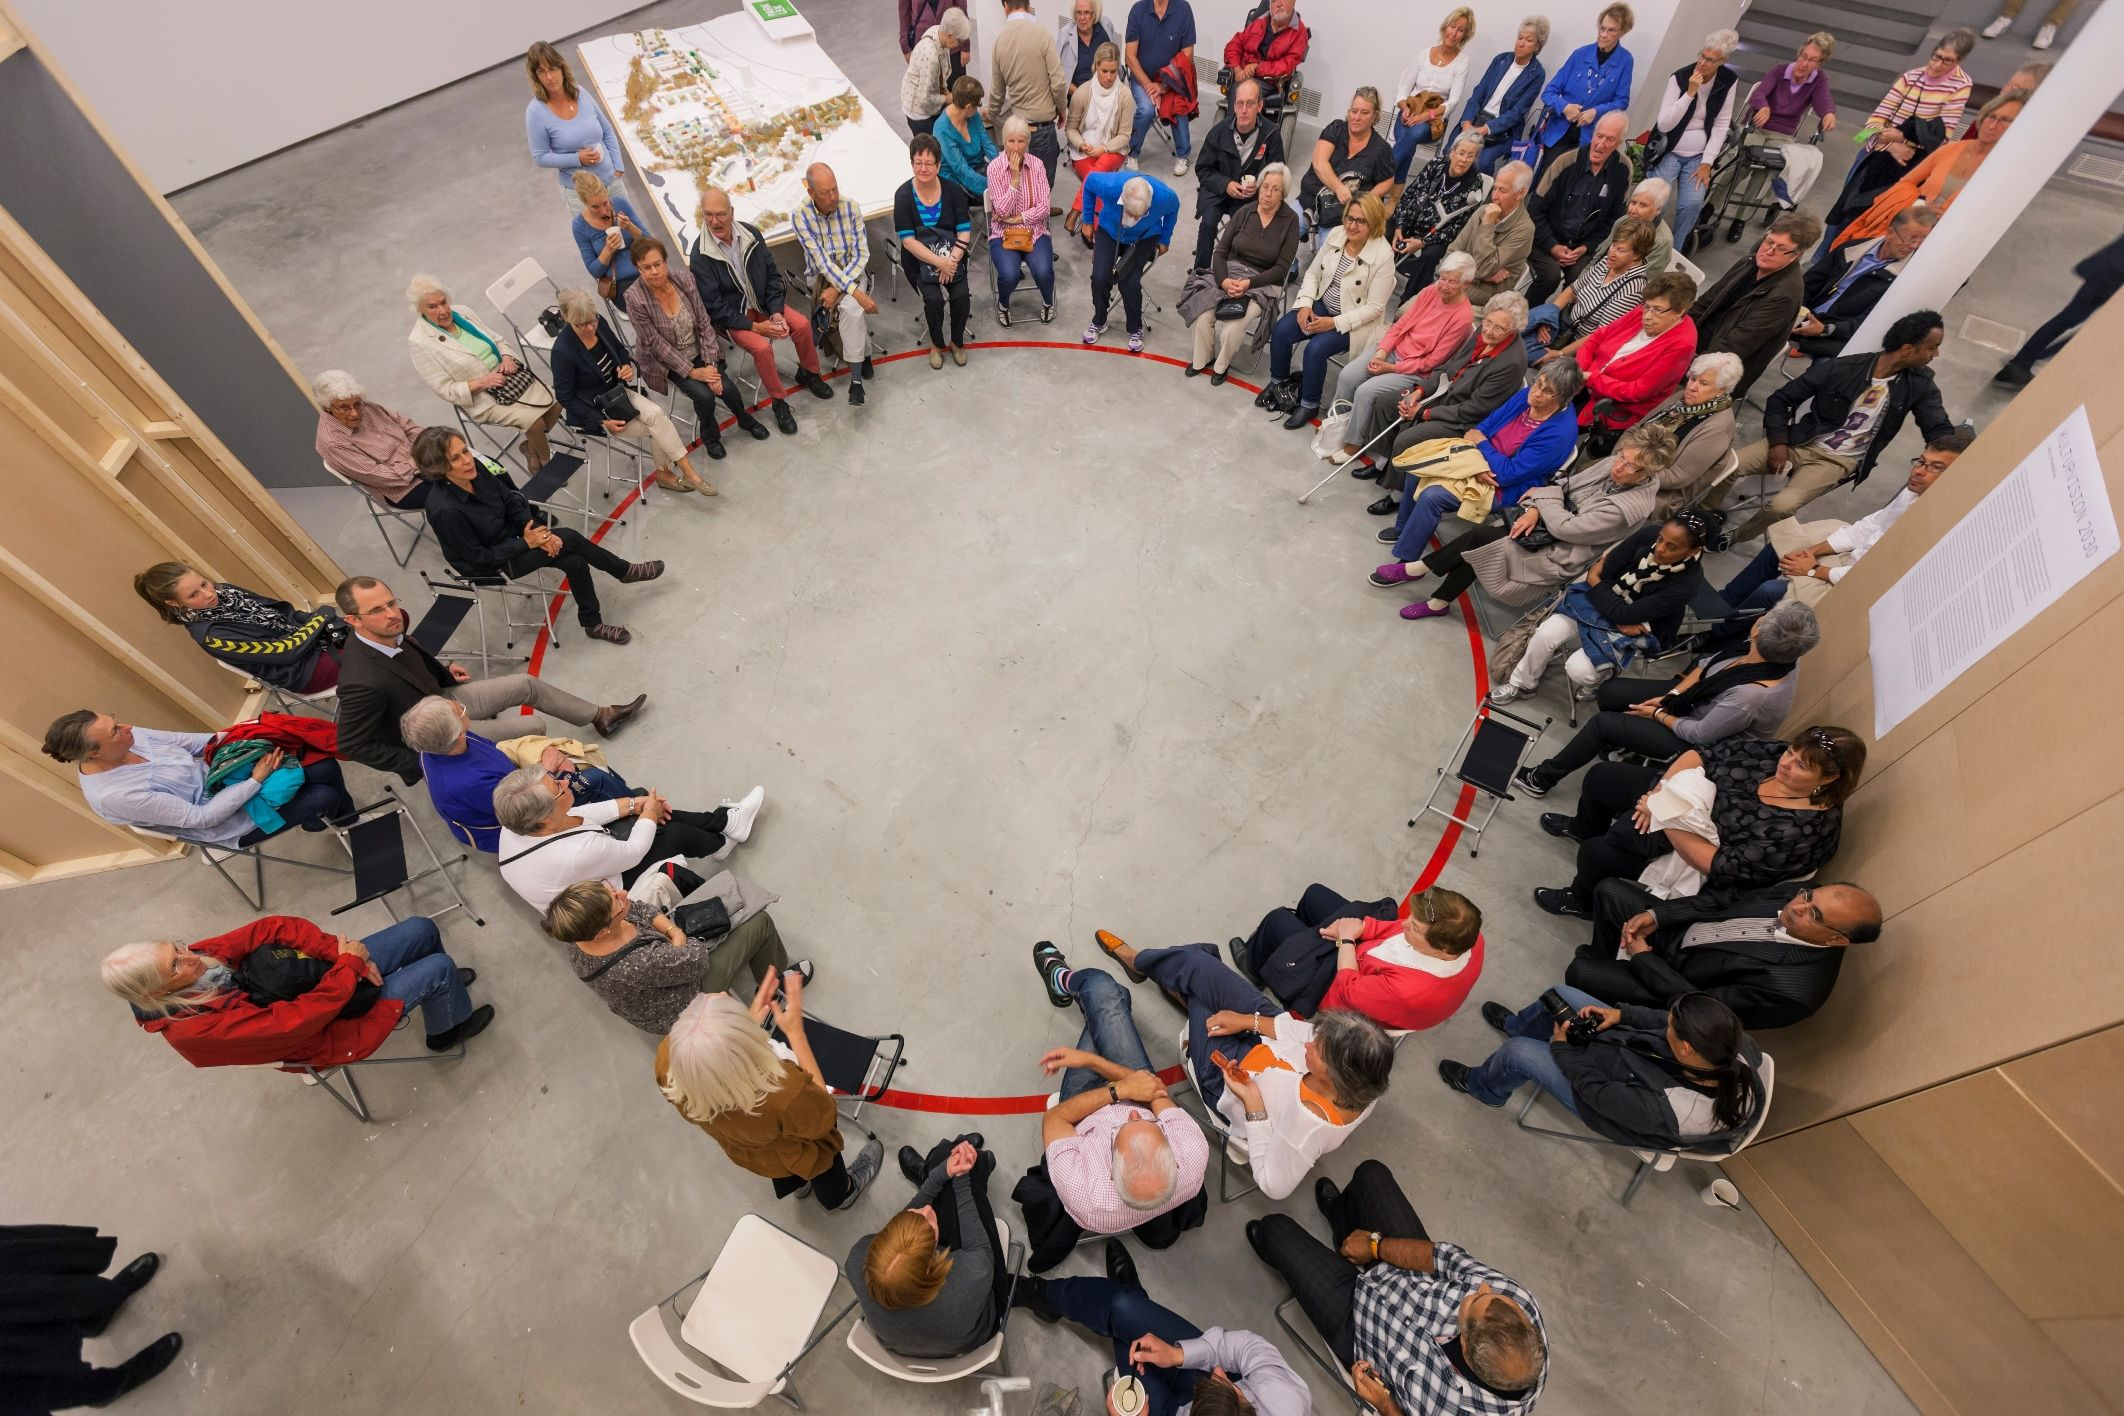 a circle of residents convened by the artist to discuss the shaping and design of their community